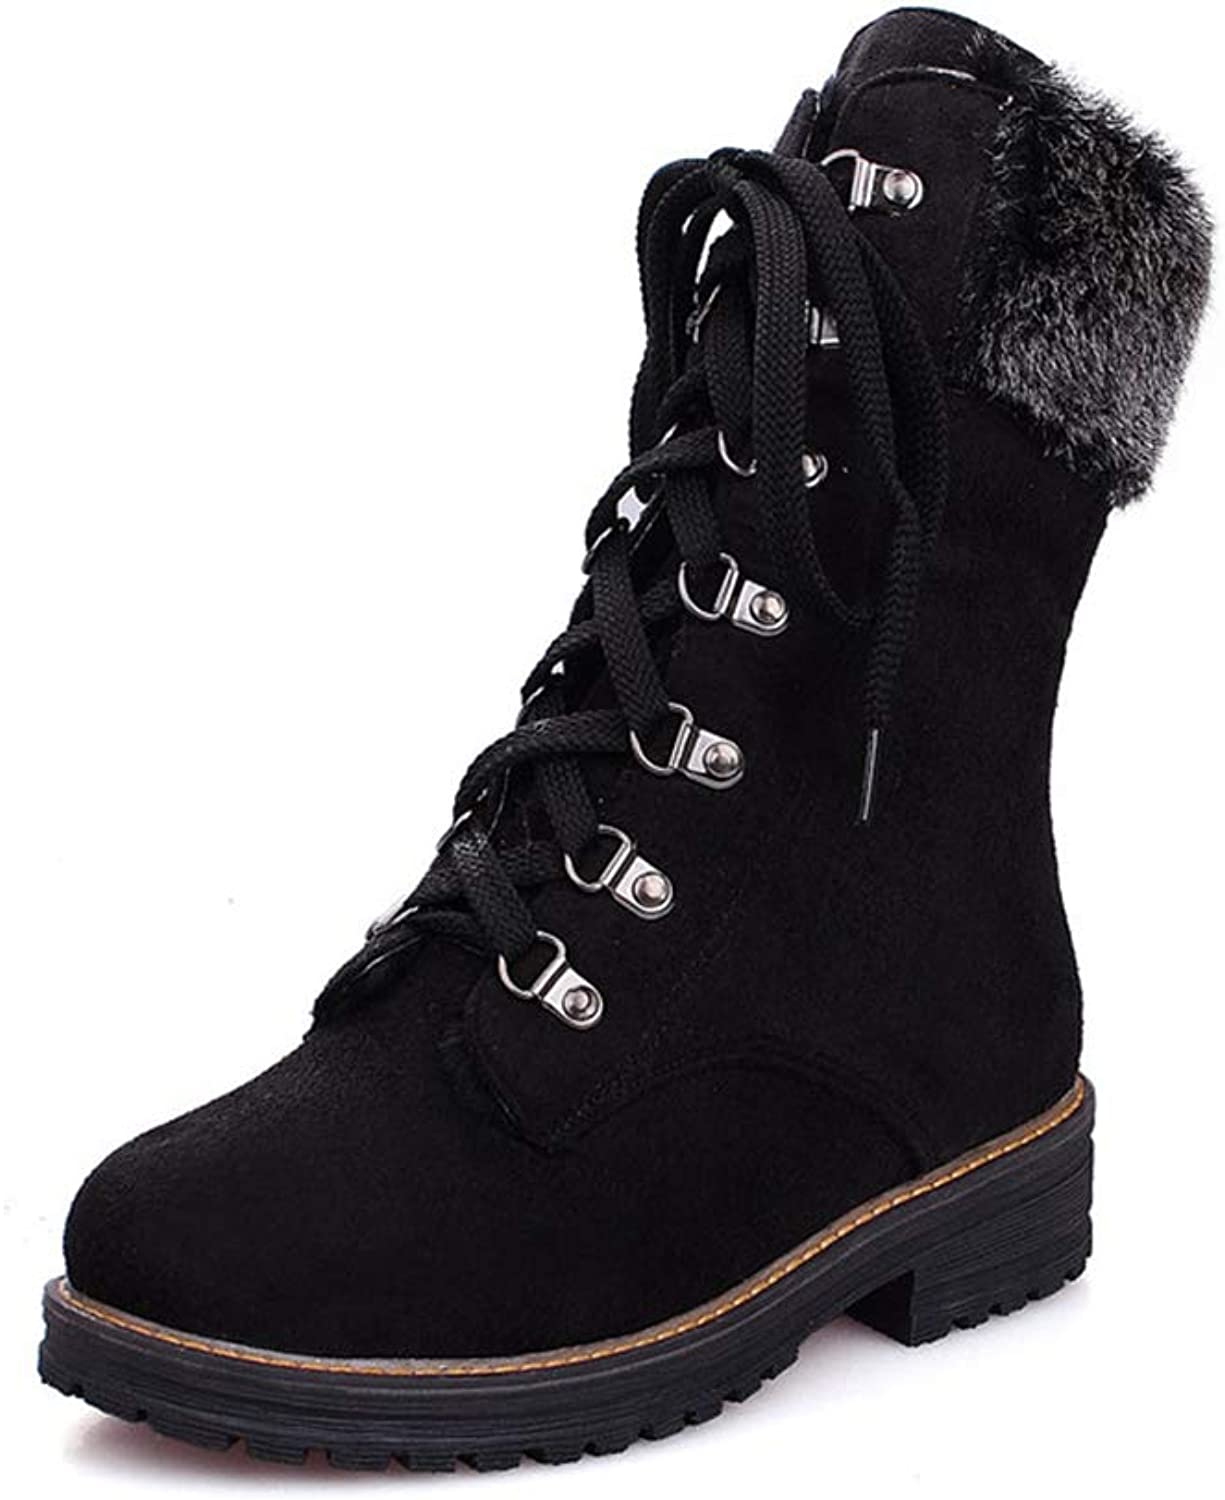 T-JULY Ankle Boots Women Round Toe Flock Comfortable Winter Snow Boots Lace up Square Heels Casual shoes